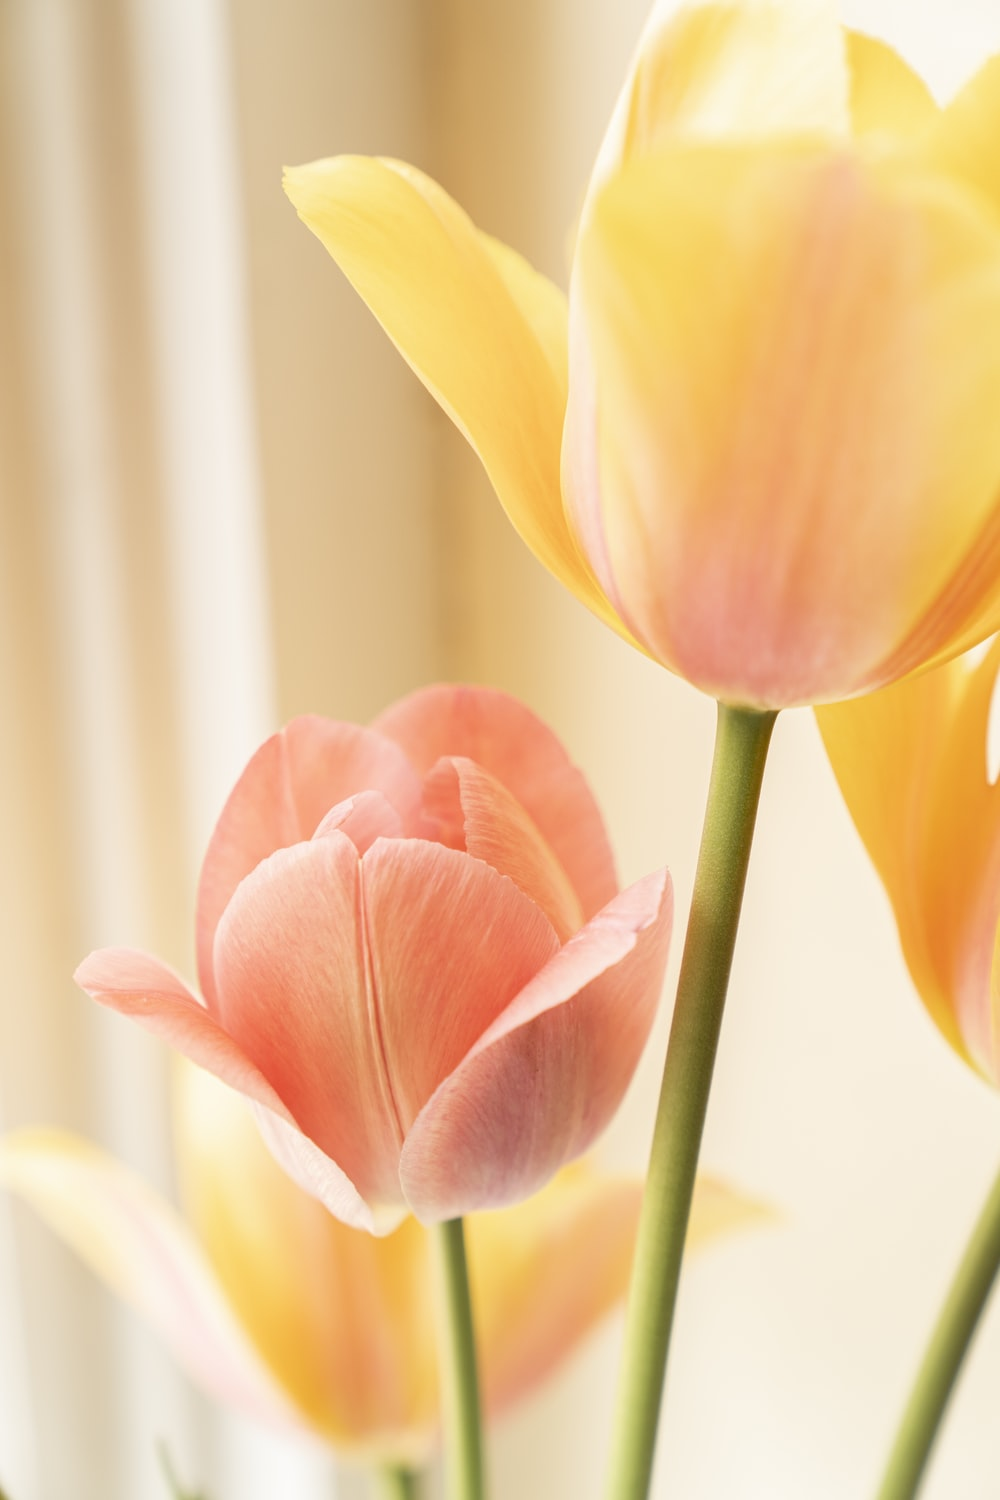 yellow and red tulip in bloom close up photo